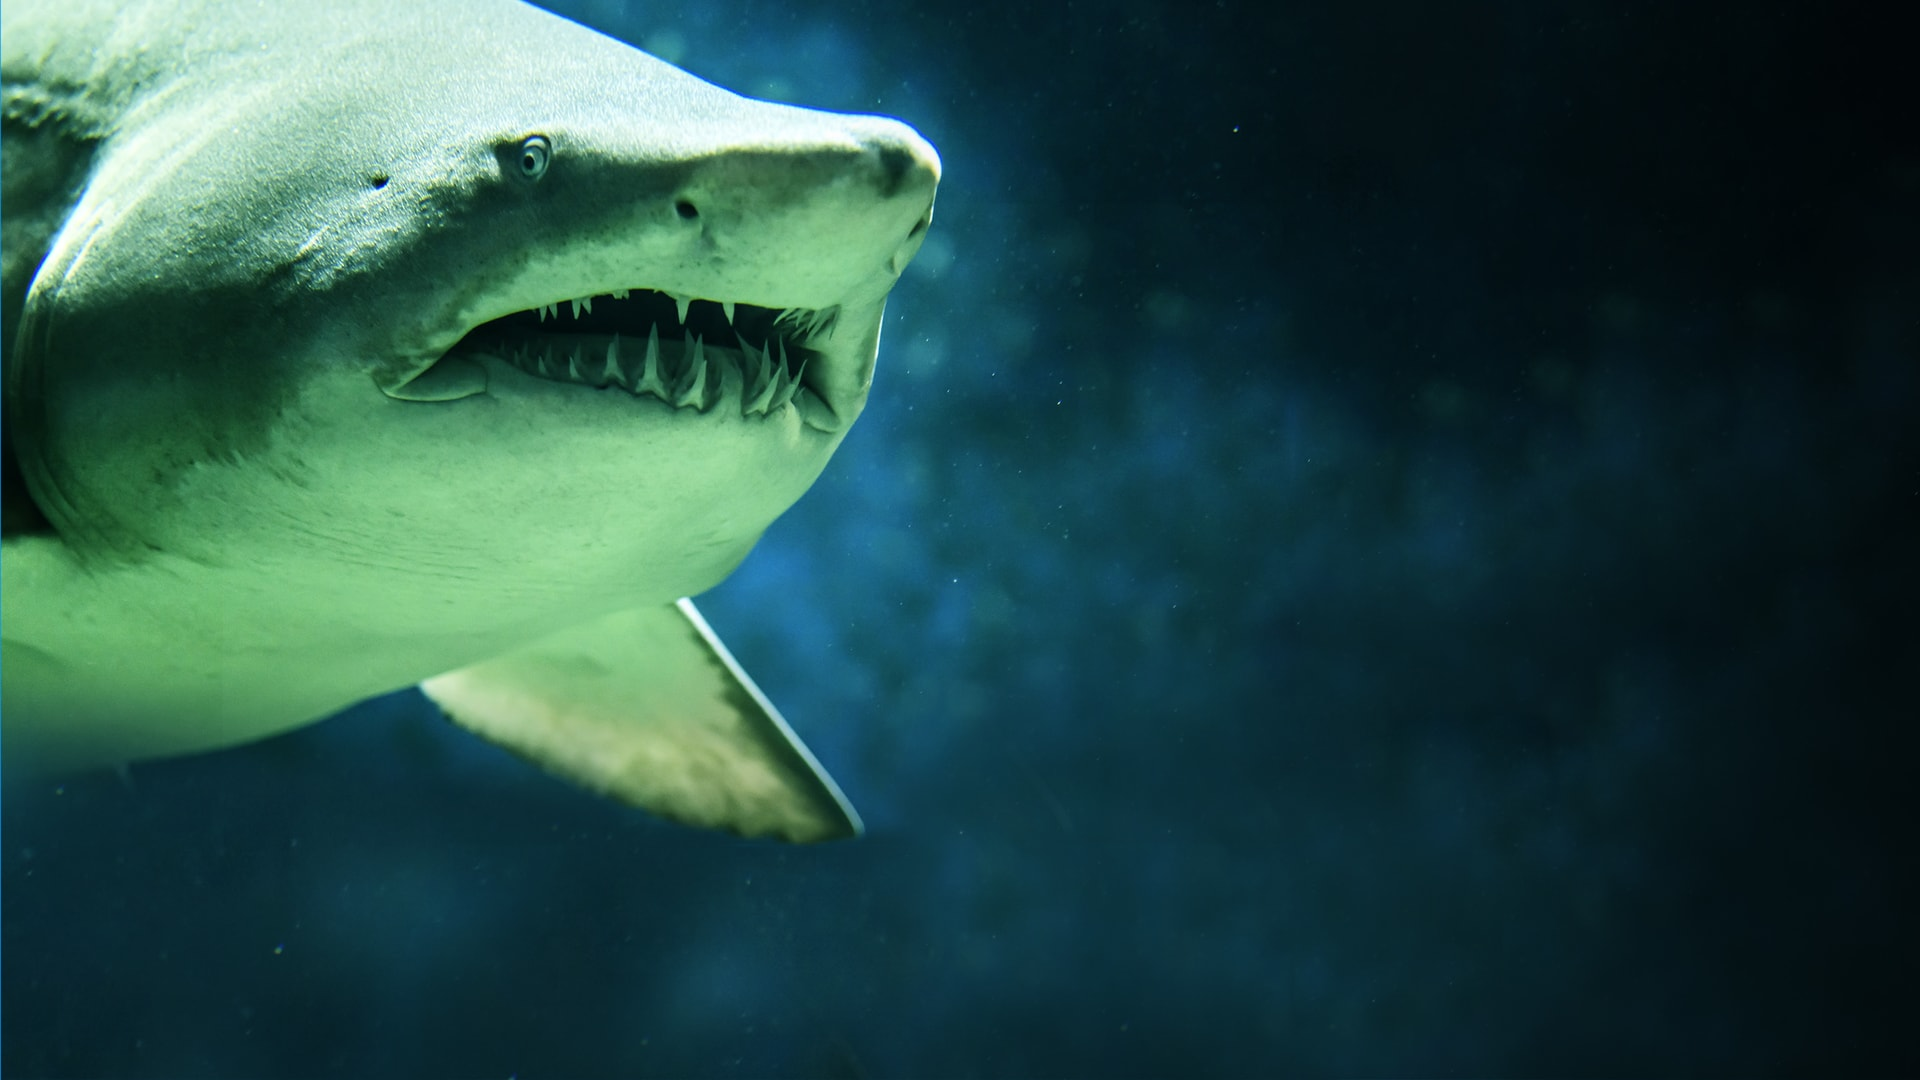 Shark Attack Wallpaper Hd 87034 Loadtve